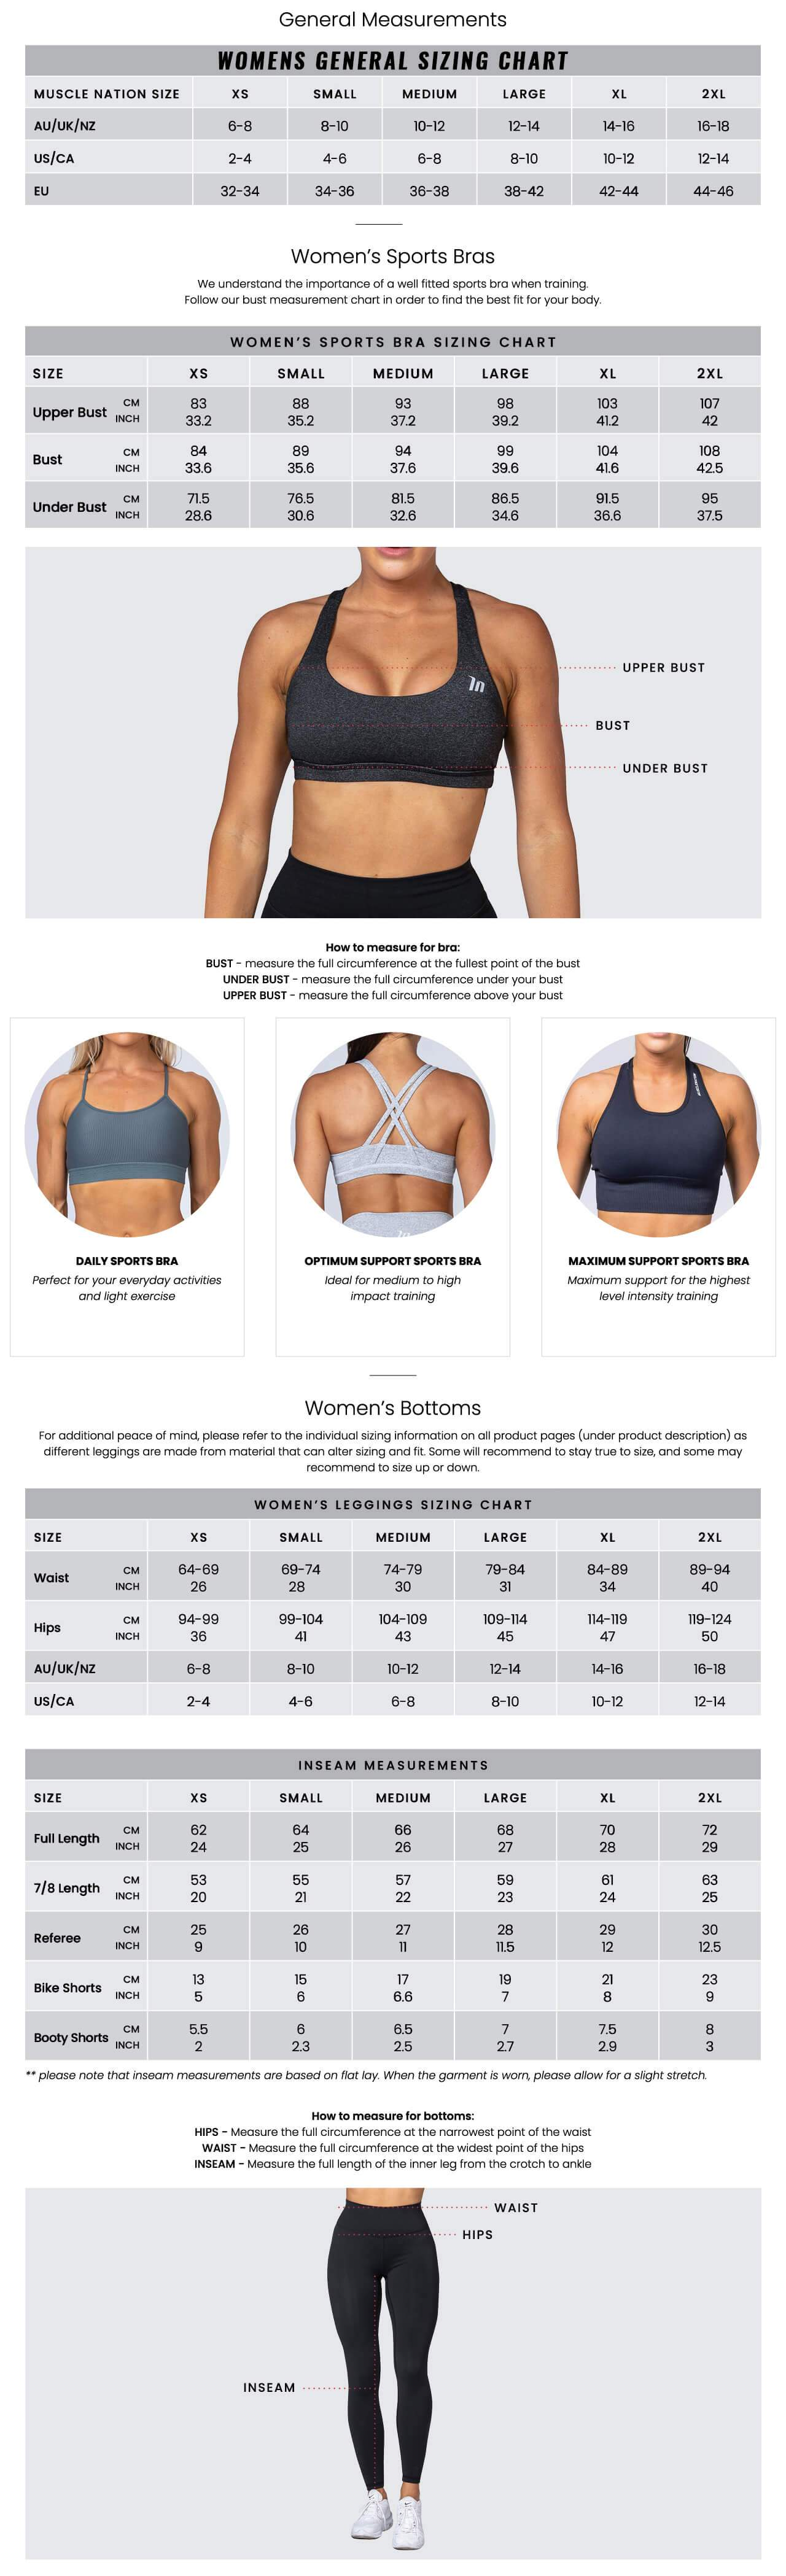 Muscle Nation Women's Size Guide